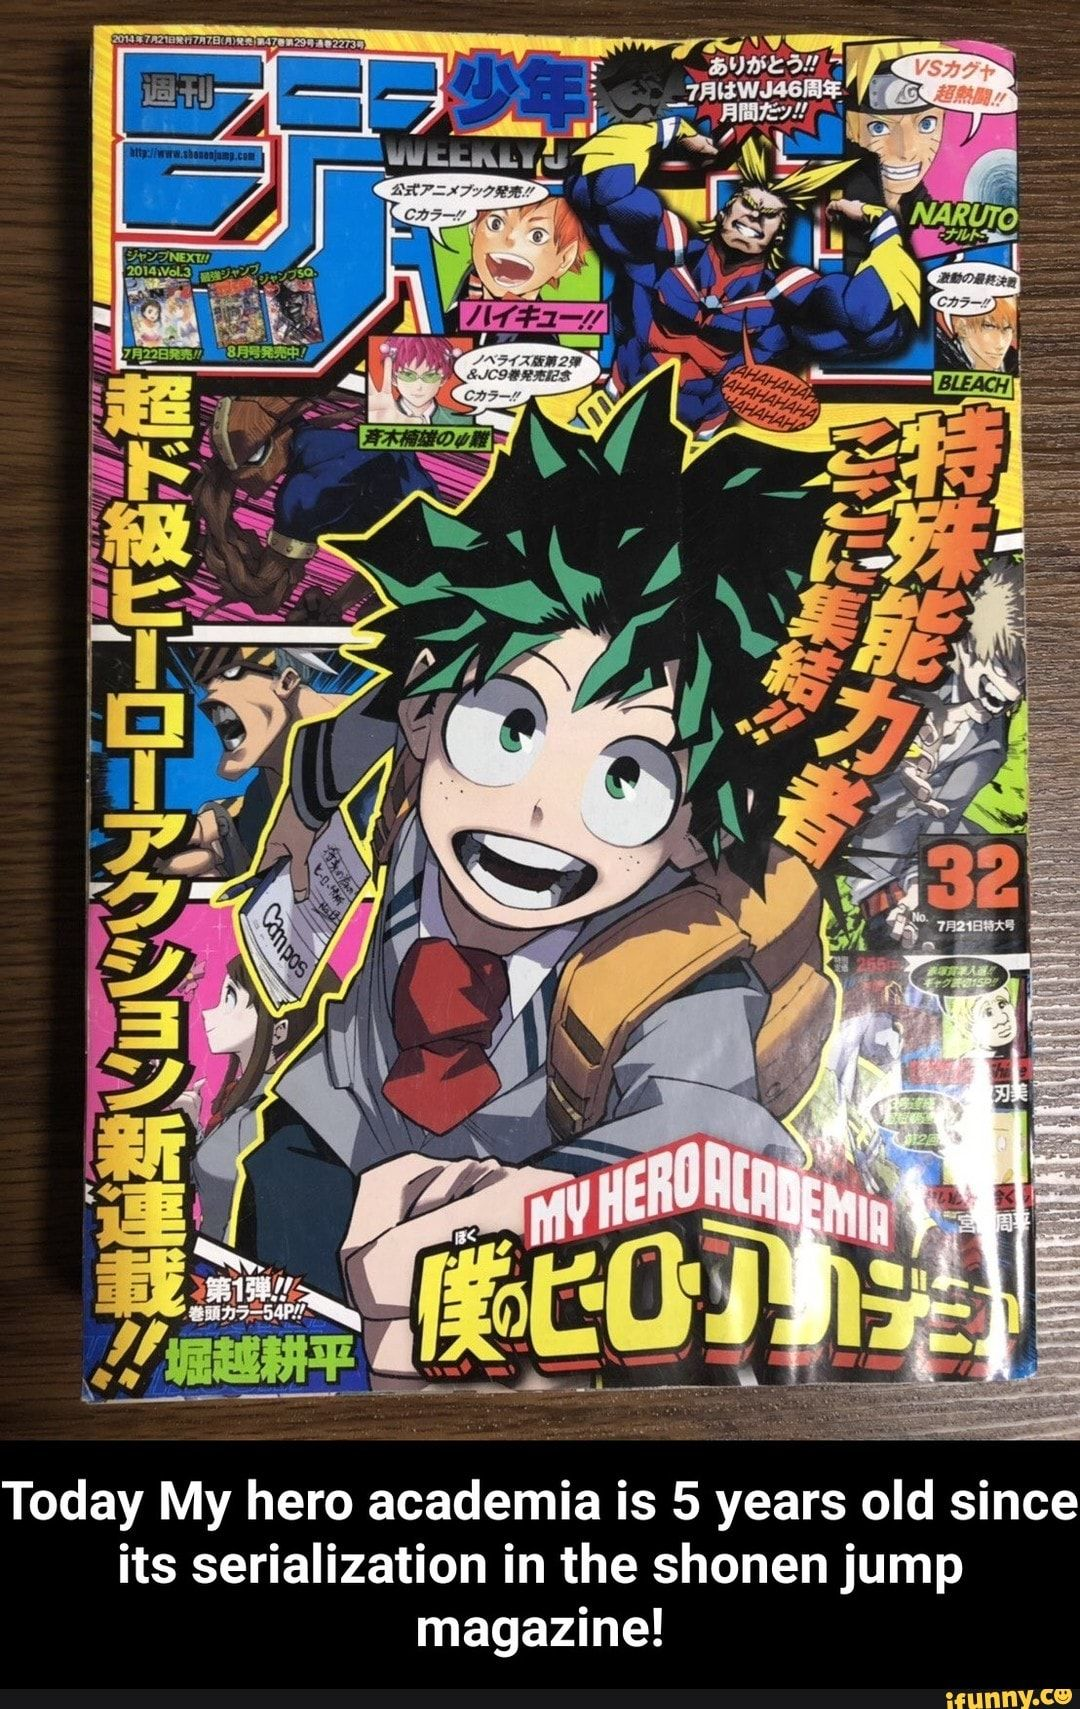 Today My Hero Academia Is 5 Years Old Since Its Serialization In The Shonen Jump Magazine Today My Hero Academia Is 5 Years Old Since Its Serialization In Th